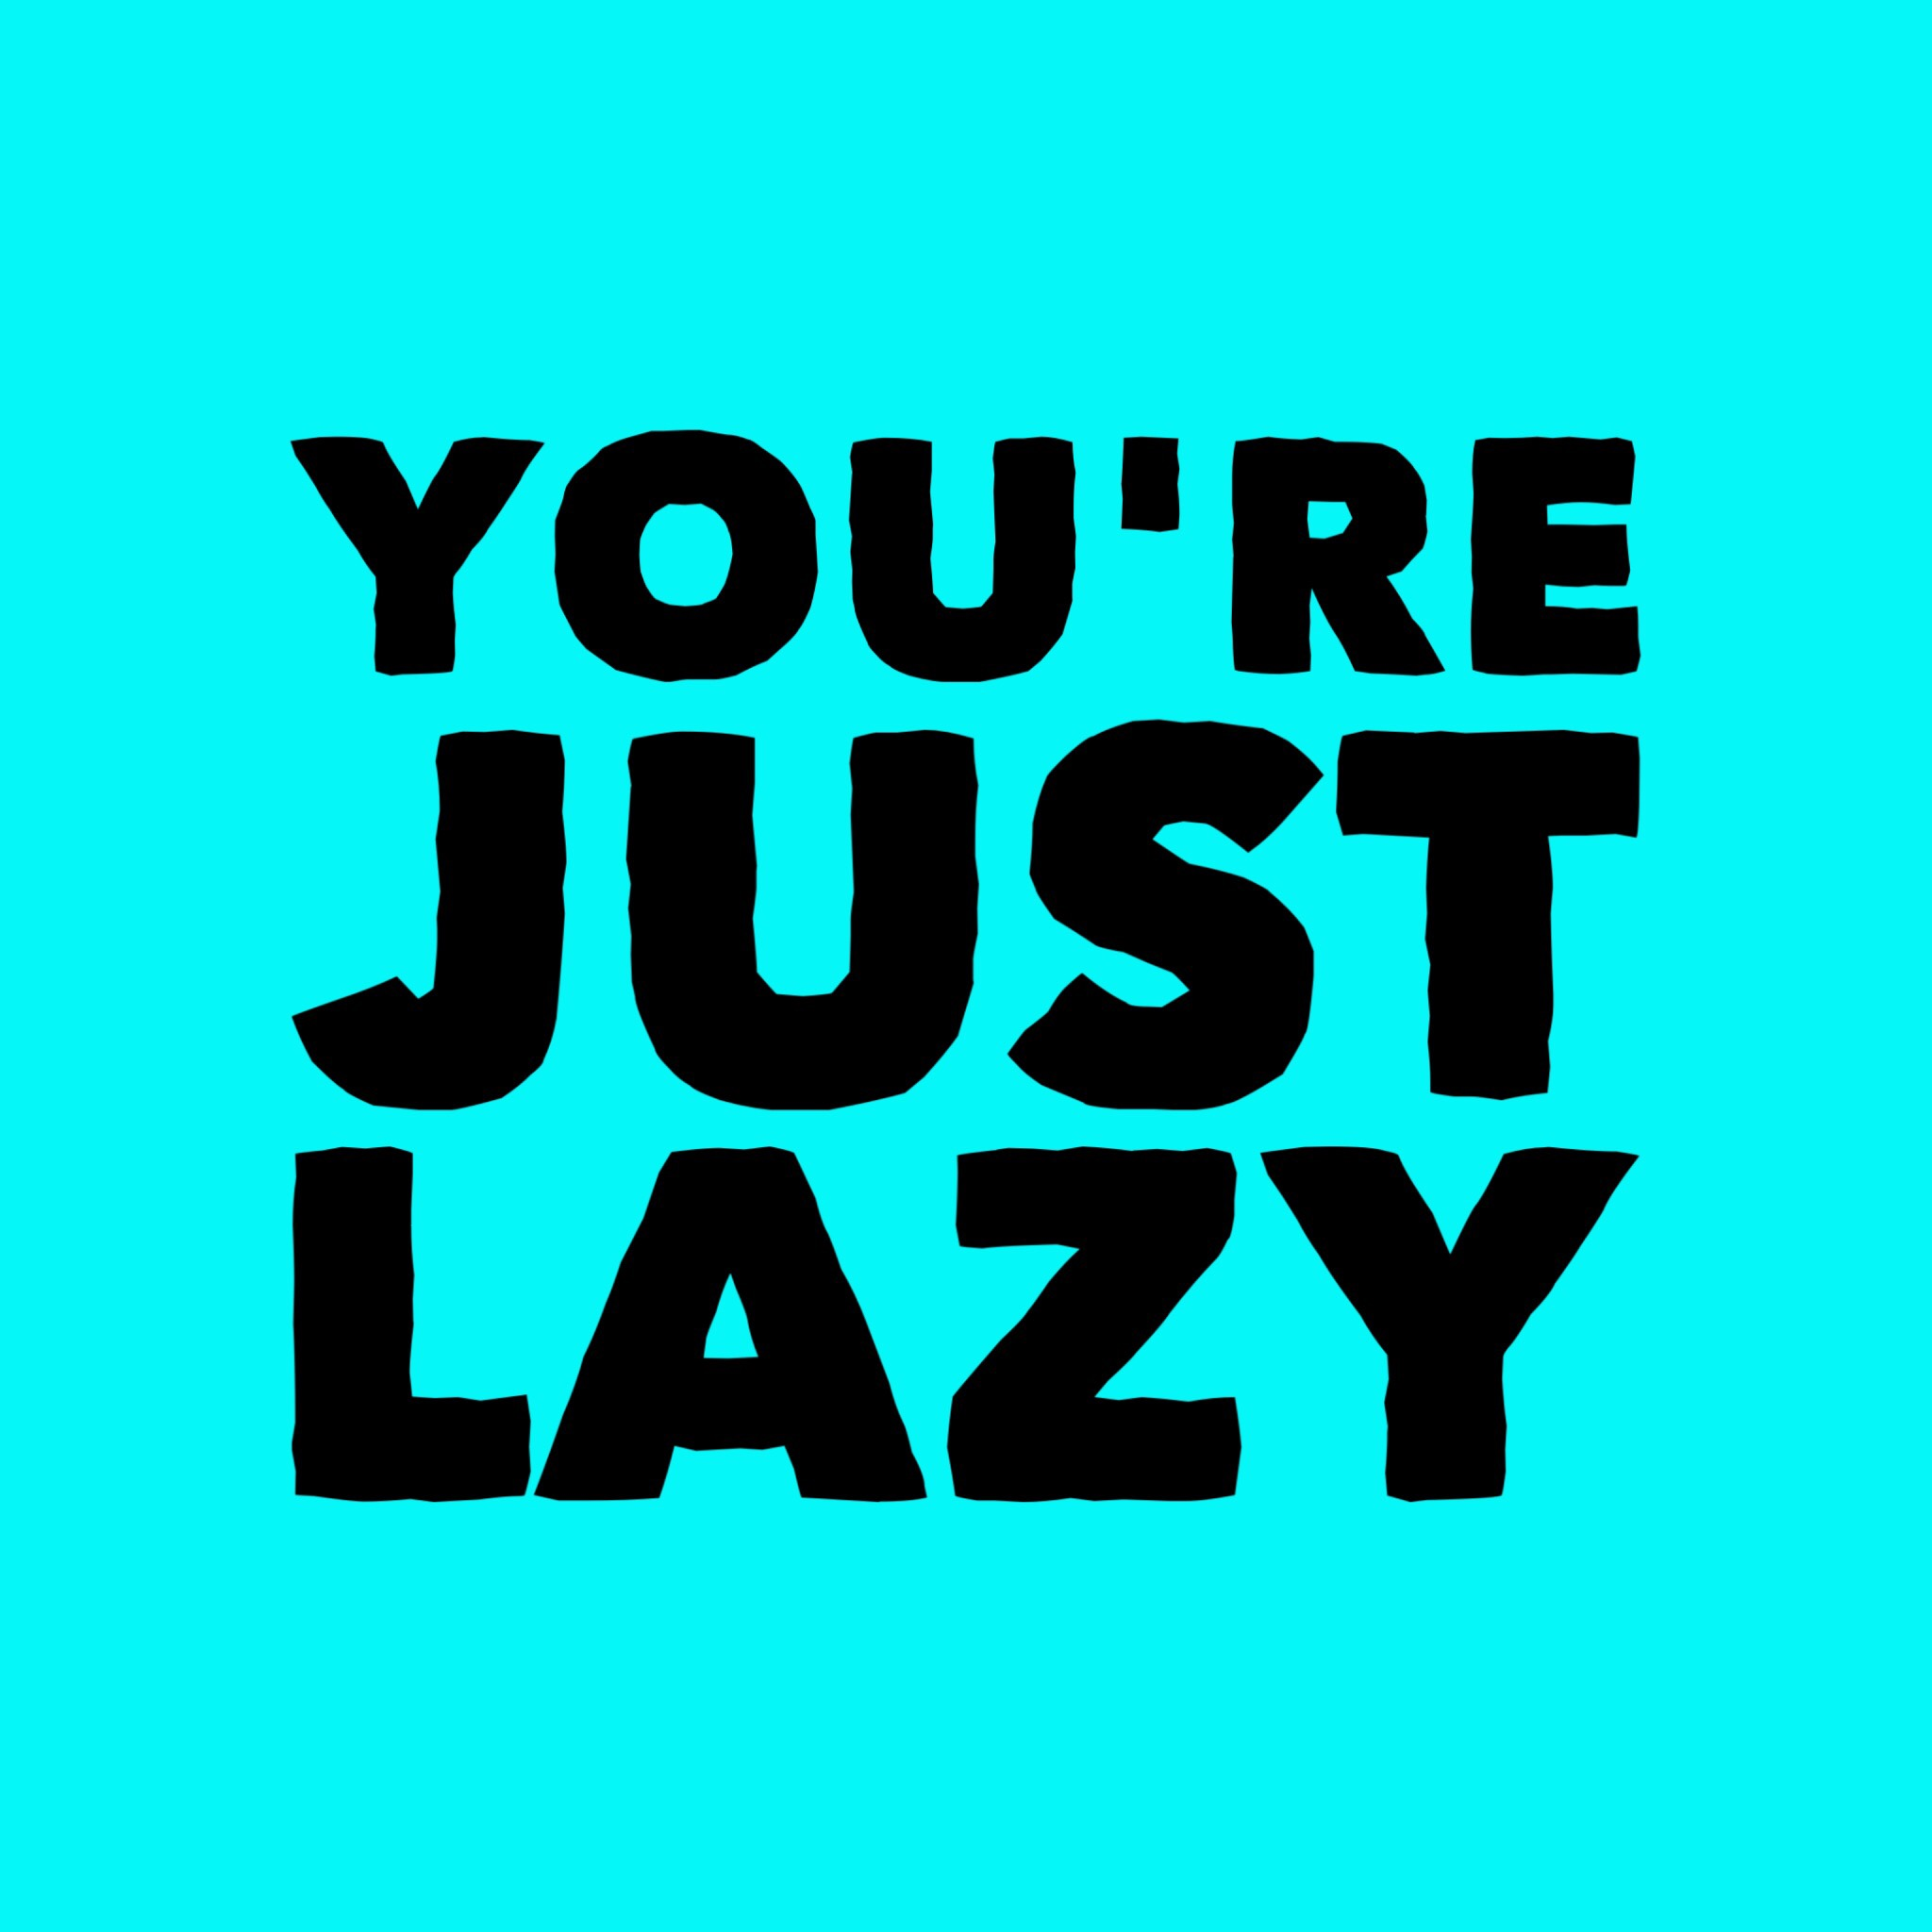 You're just lazy